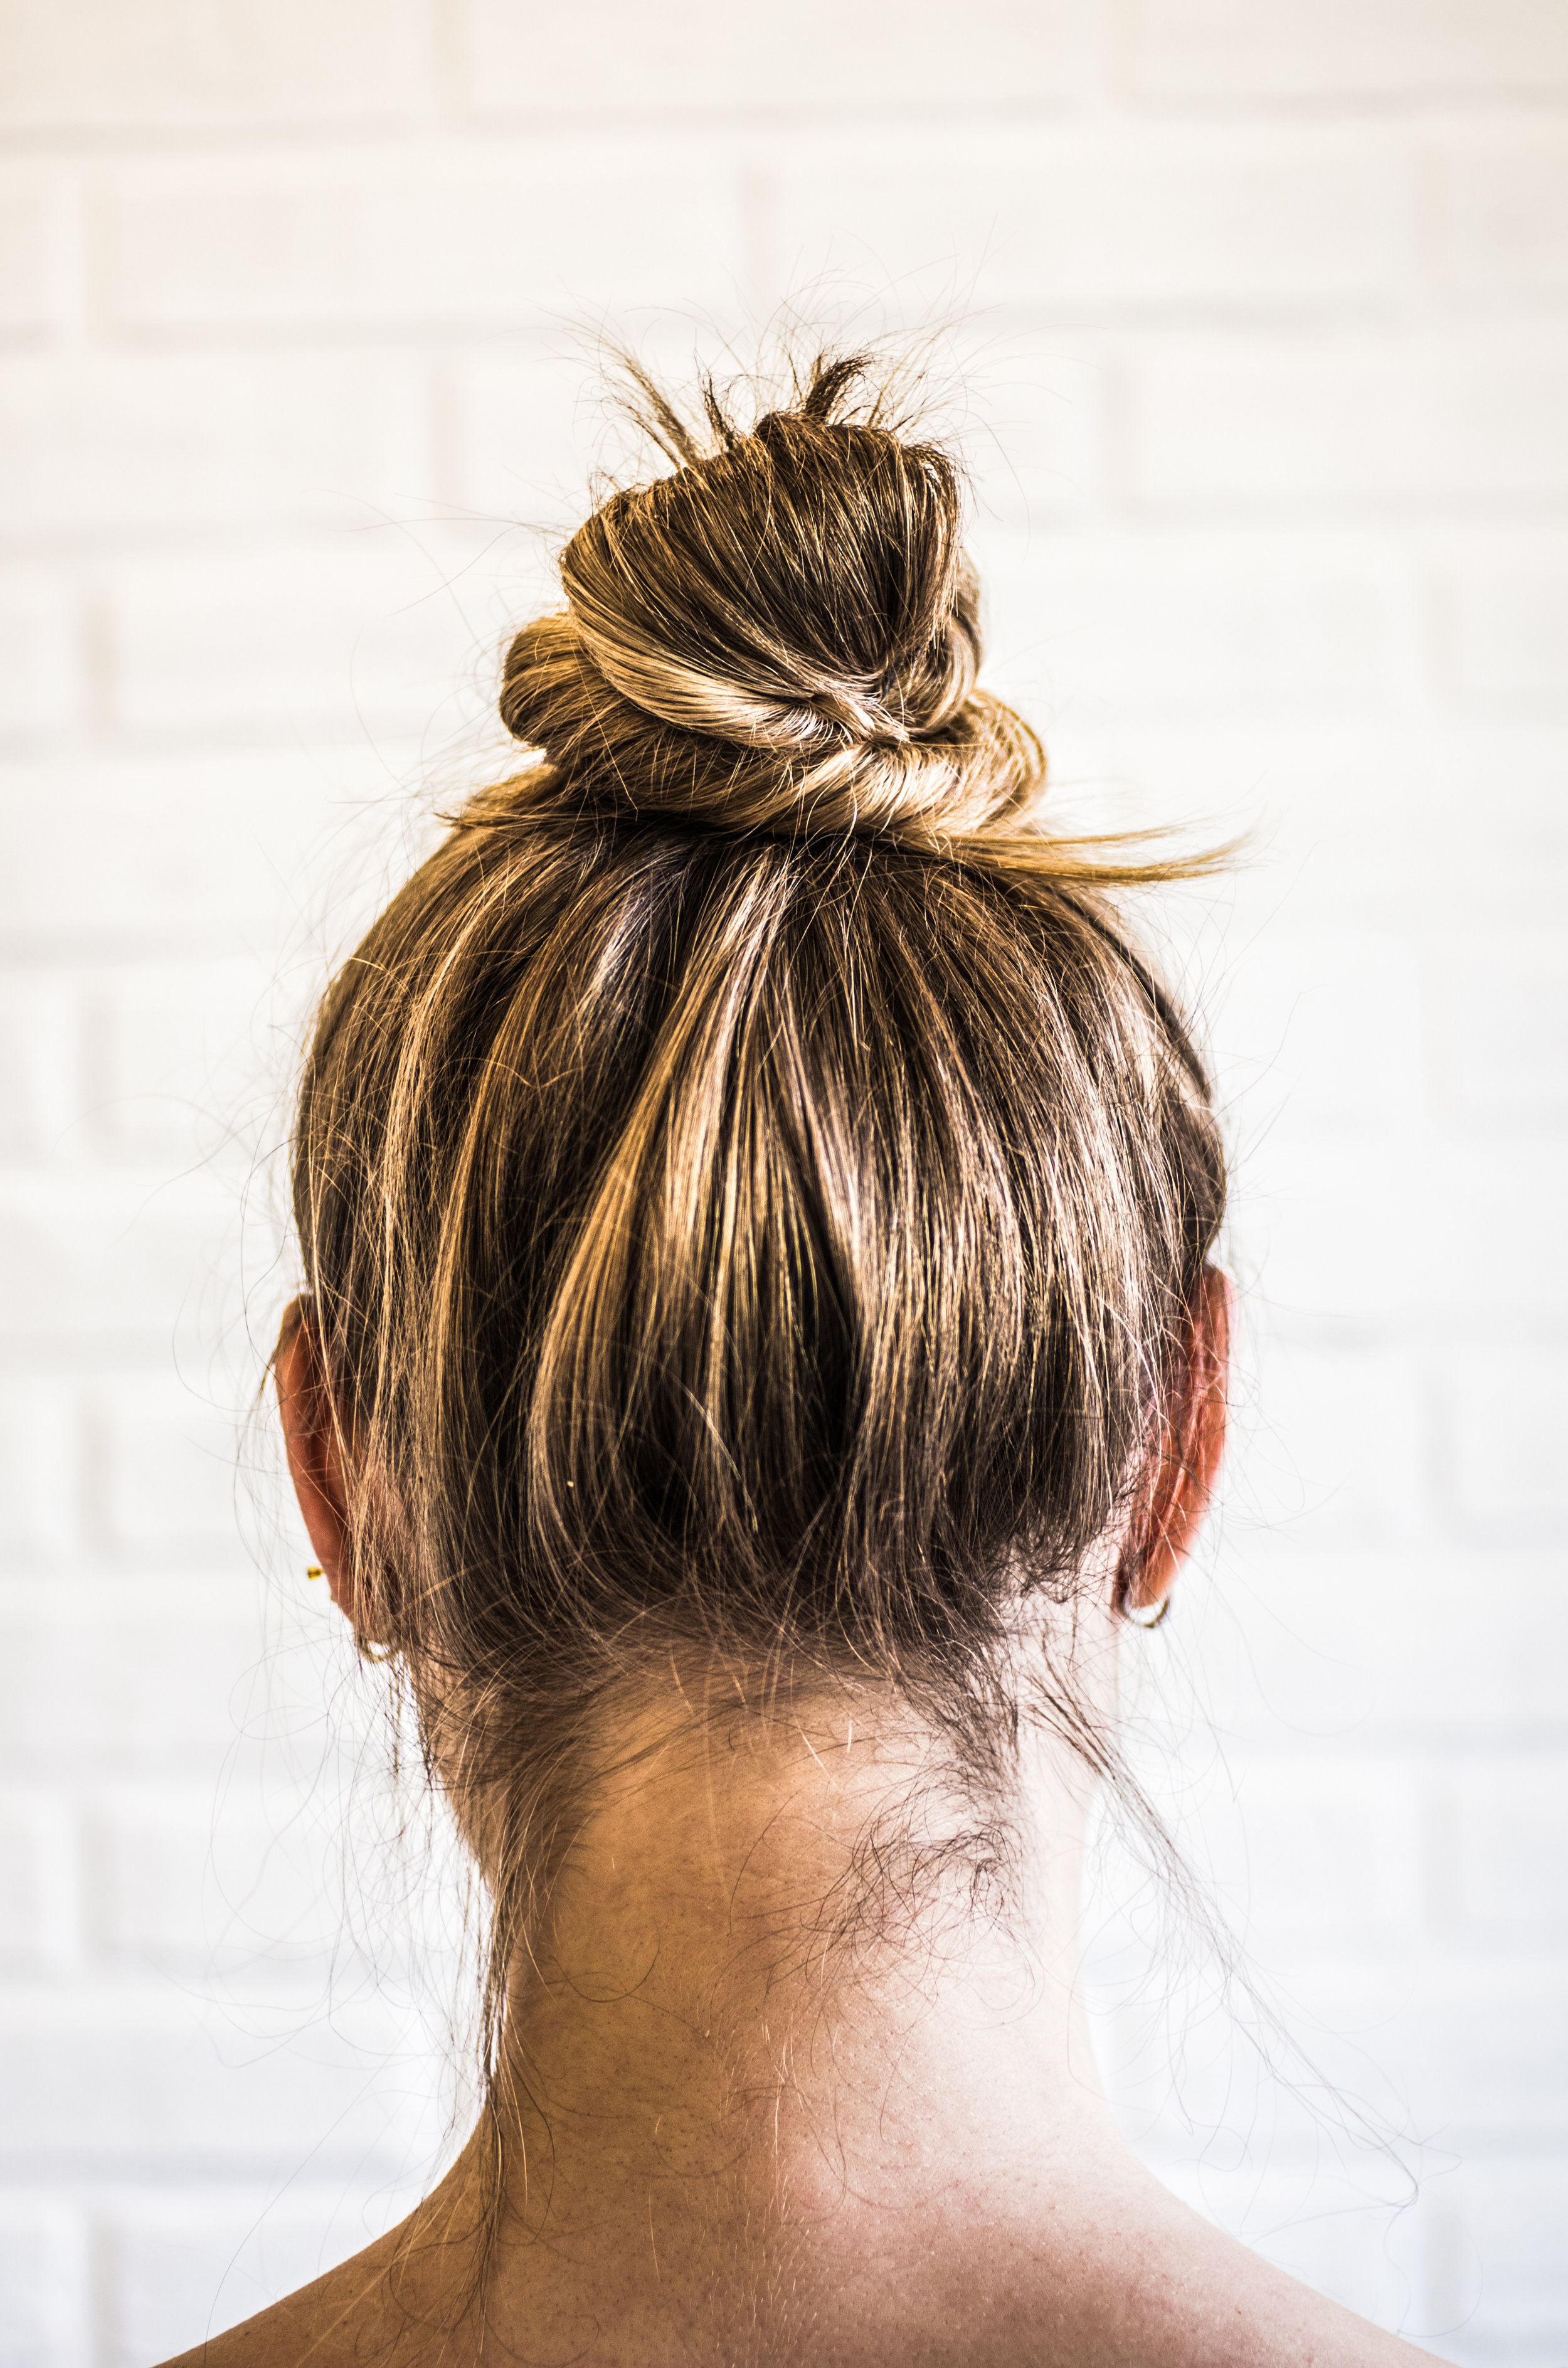 """Ponytail headaches - Yes! This is a real thing. Plus, if you are pulling your hair into a tight ponytail too often this can cause traction alopecia #thats🍌If you pull your hair in a tight ponytail when wet you can cause breakage too!""""But I like to wear my hair up!"""". We totally get it! Try a loose hair tie like THIS to safely wear your hair up and out of your face."""